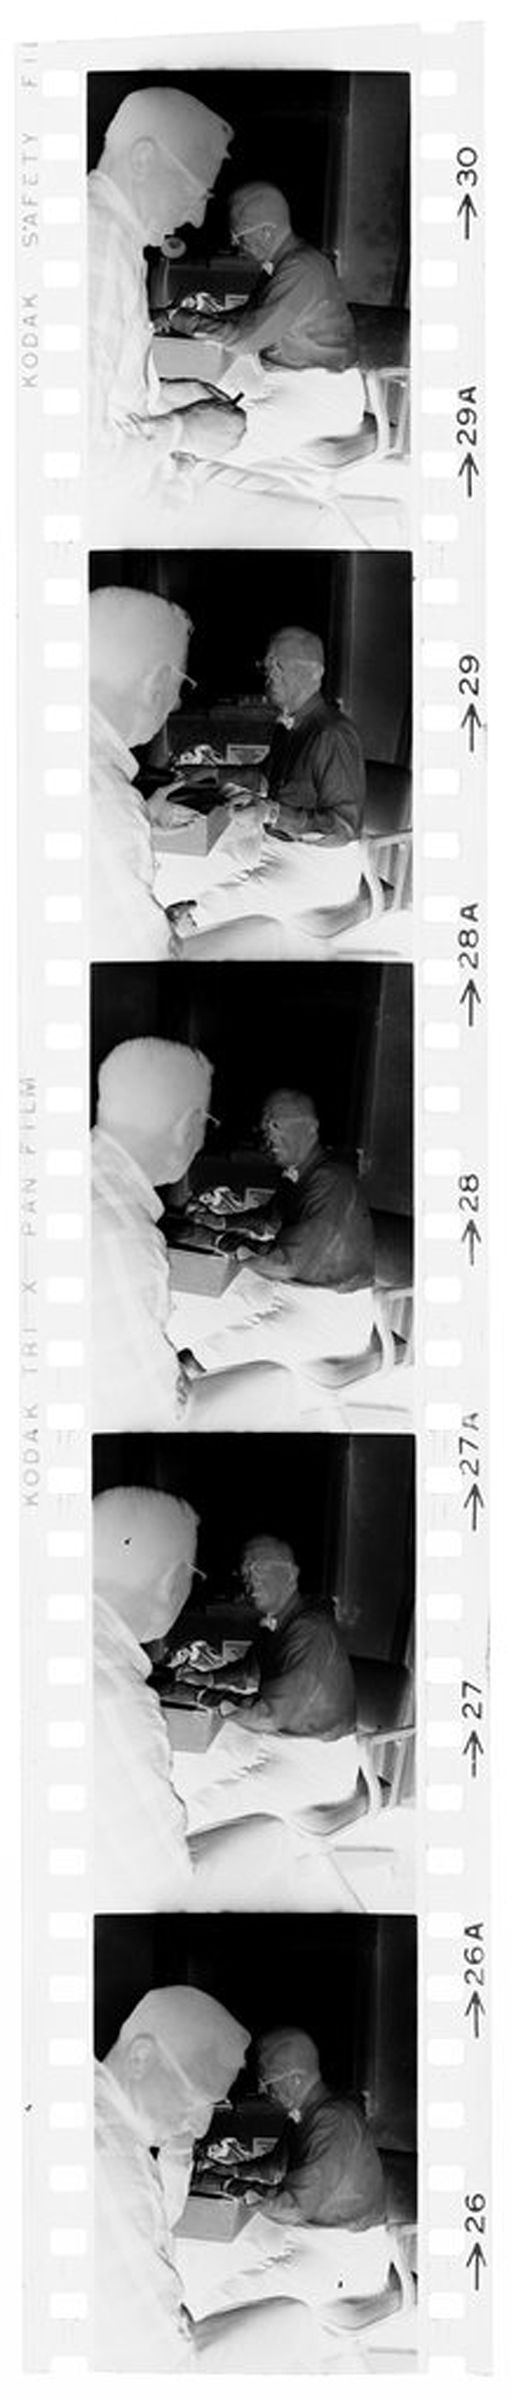 Untitled (Dr. Herman M. Juergens Talking With Patient)